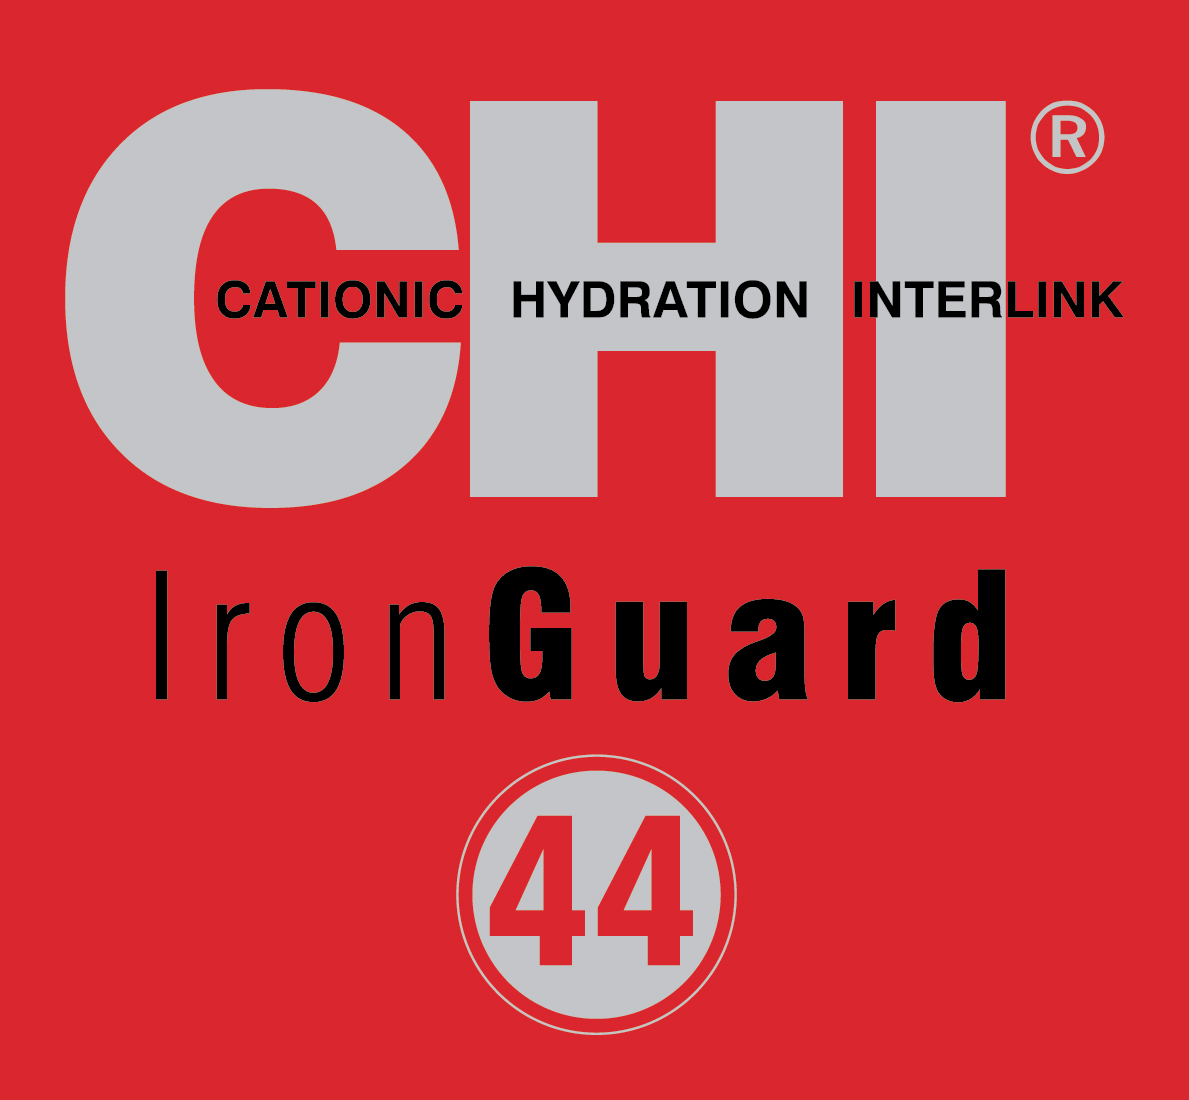 CHI Iron Guard 44 Logo Red - CHI 44 IRON GUARD